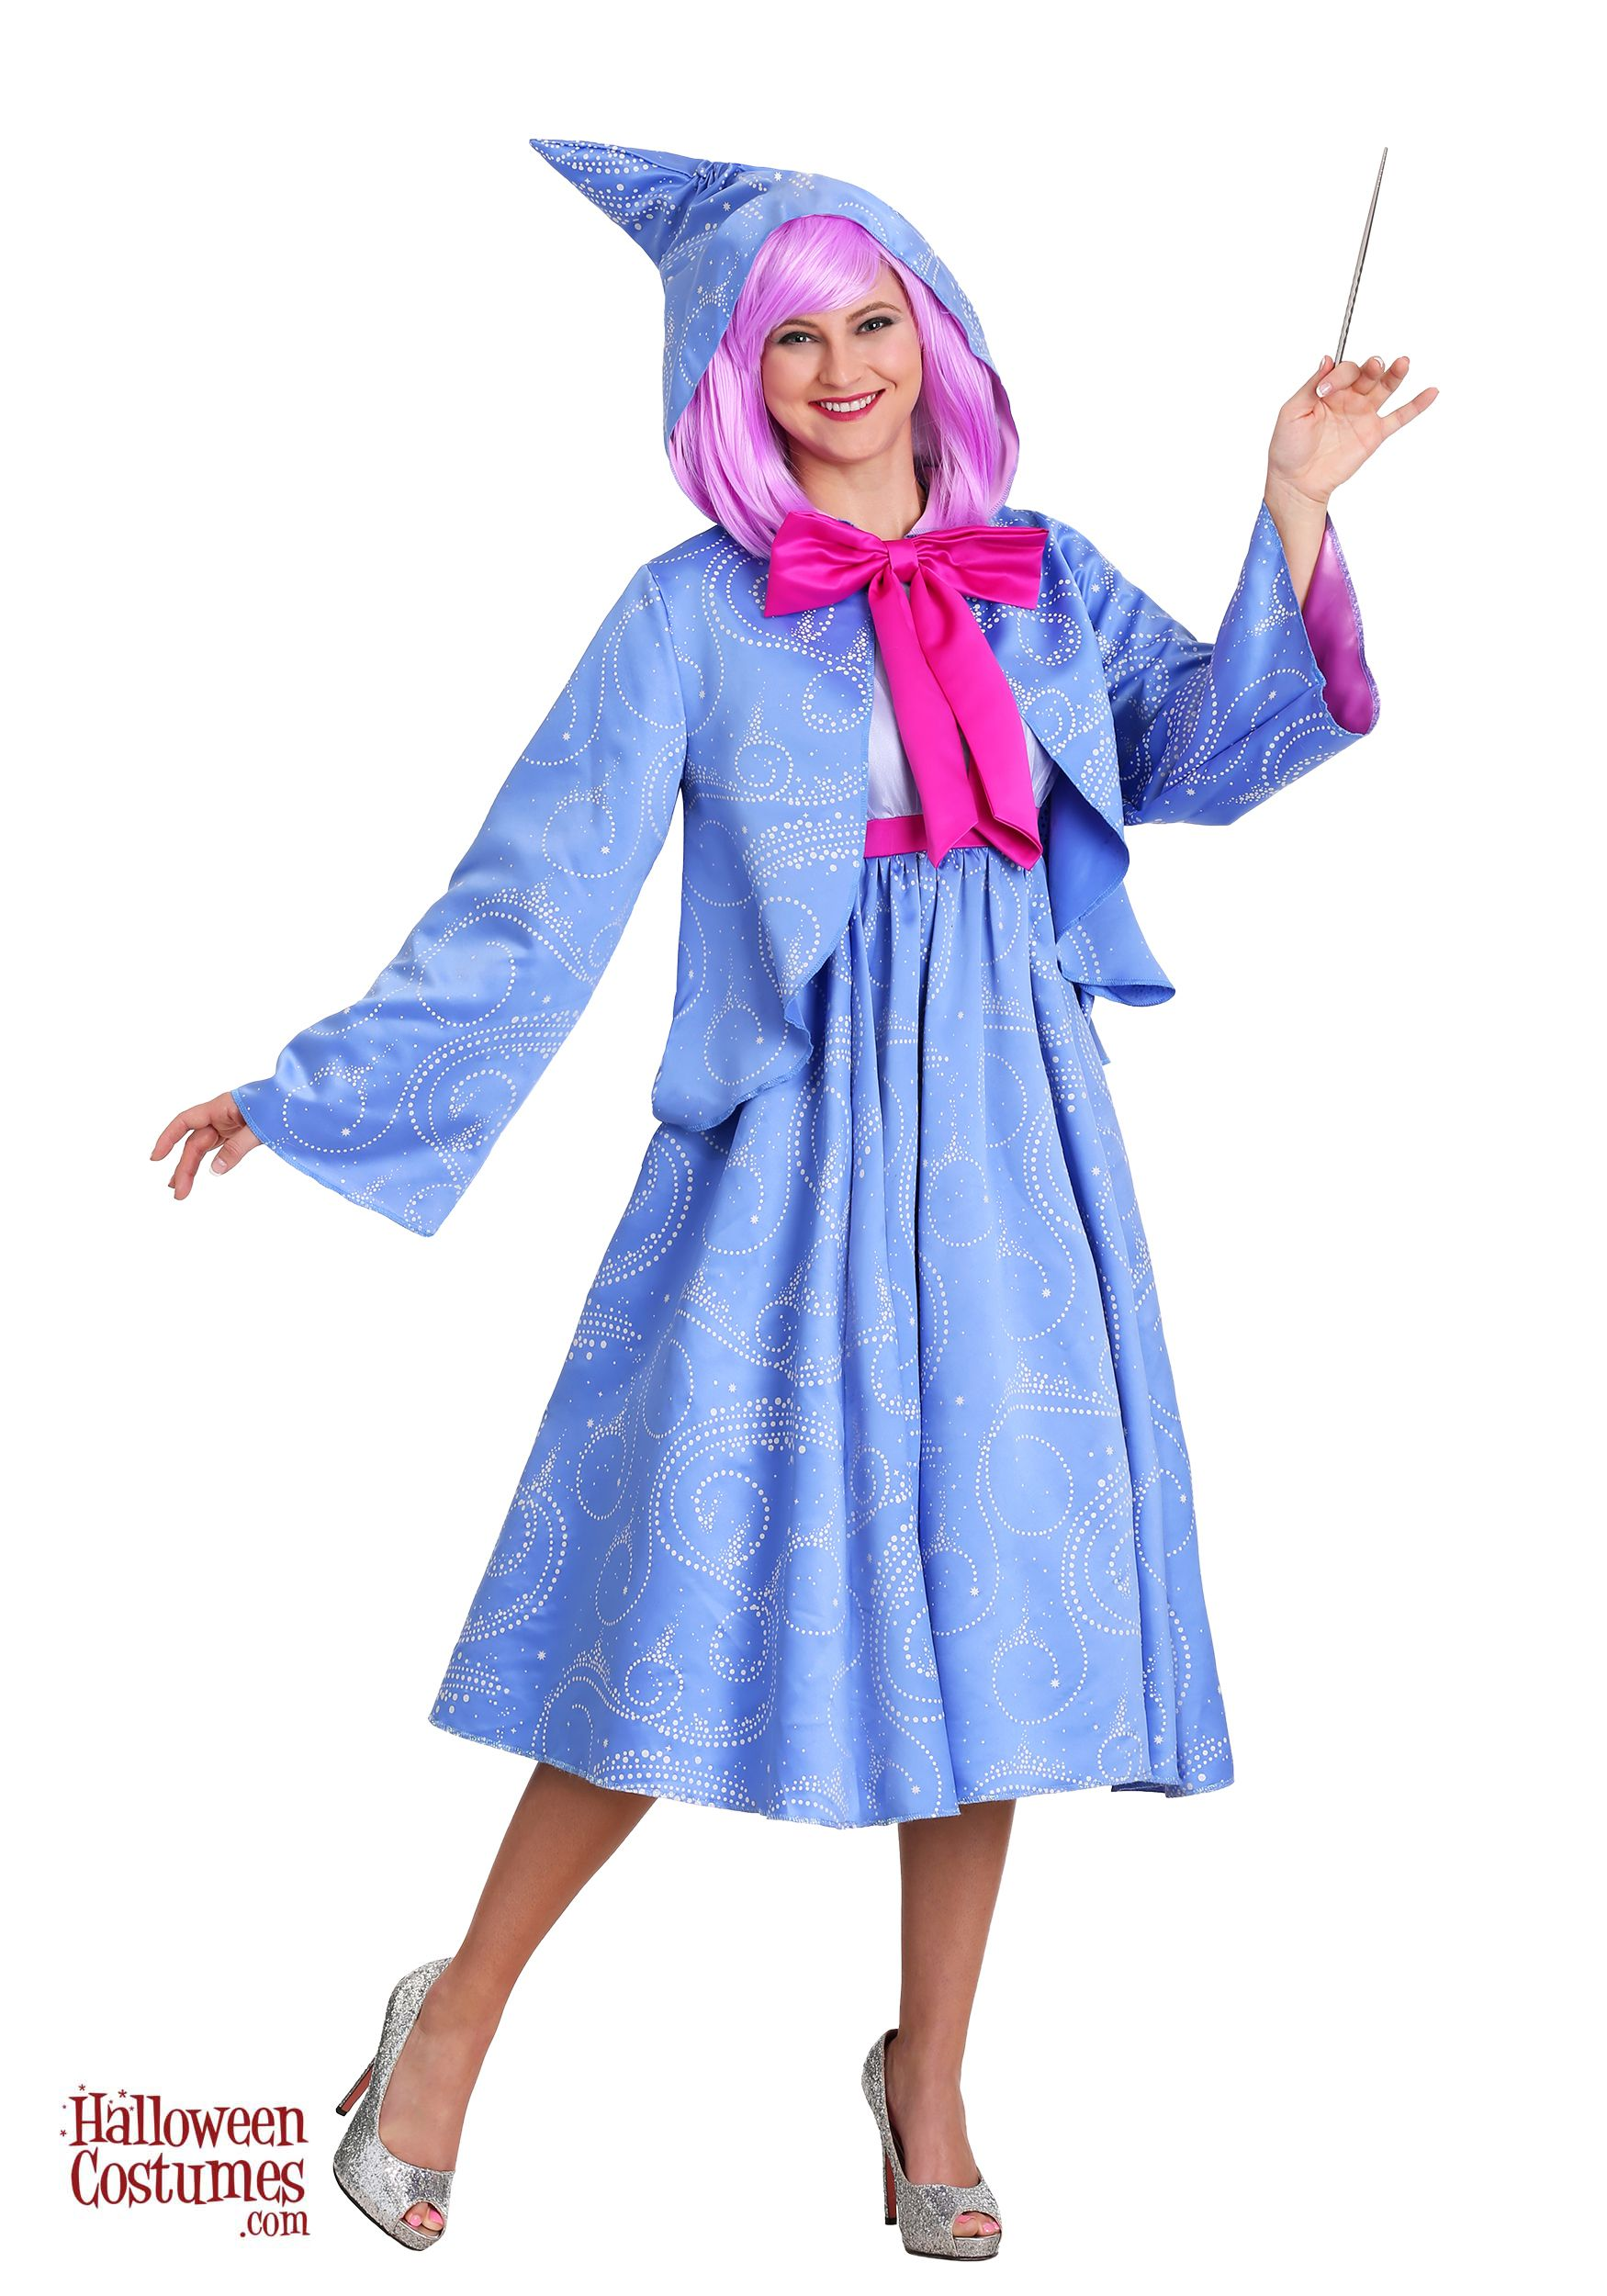 ec7f6bfcfb Disney Cinderella Fairy Godmother Women s Costume - Exclusive ...